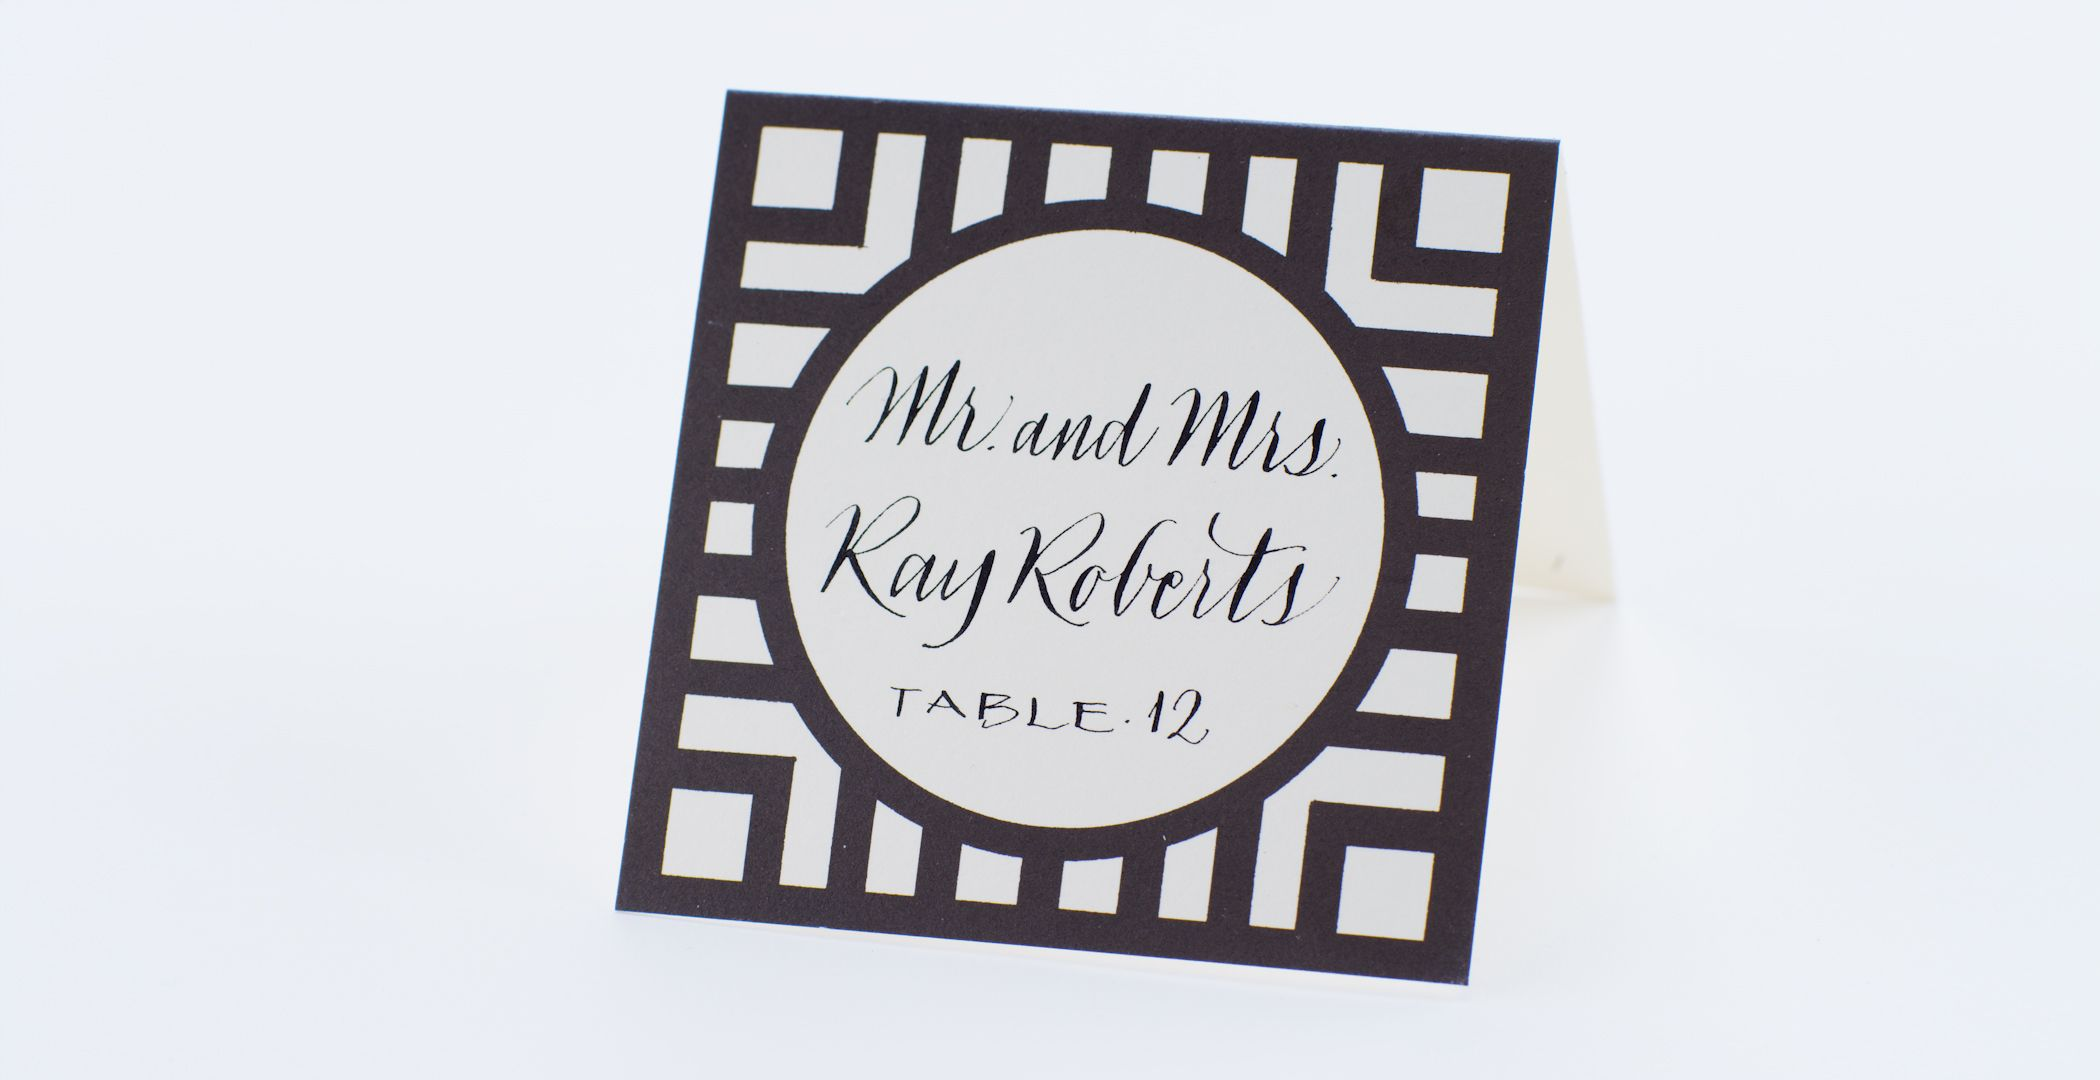 Wendelline Papers Medallion place card  Joni Script calligraphy by Wendy Ware. Available now place cards and calligraphy by Wendy Ware. Place card with calligraphy 2.70 Escort card with calligraphy 3.20